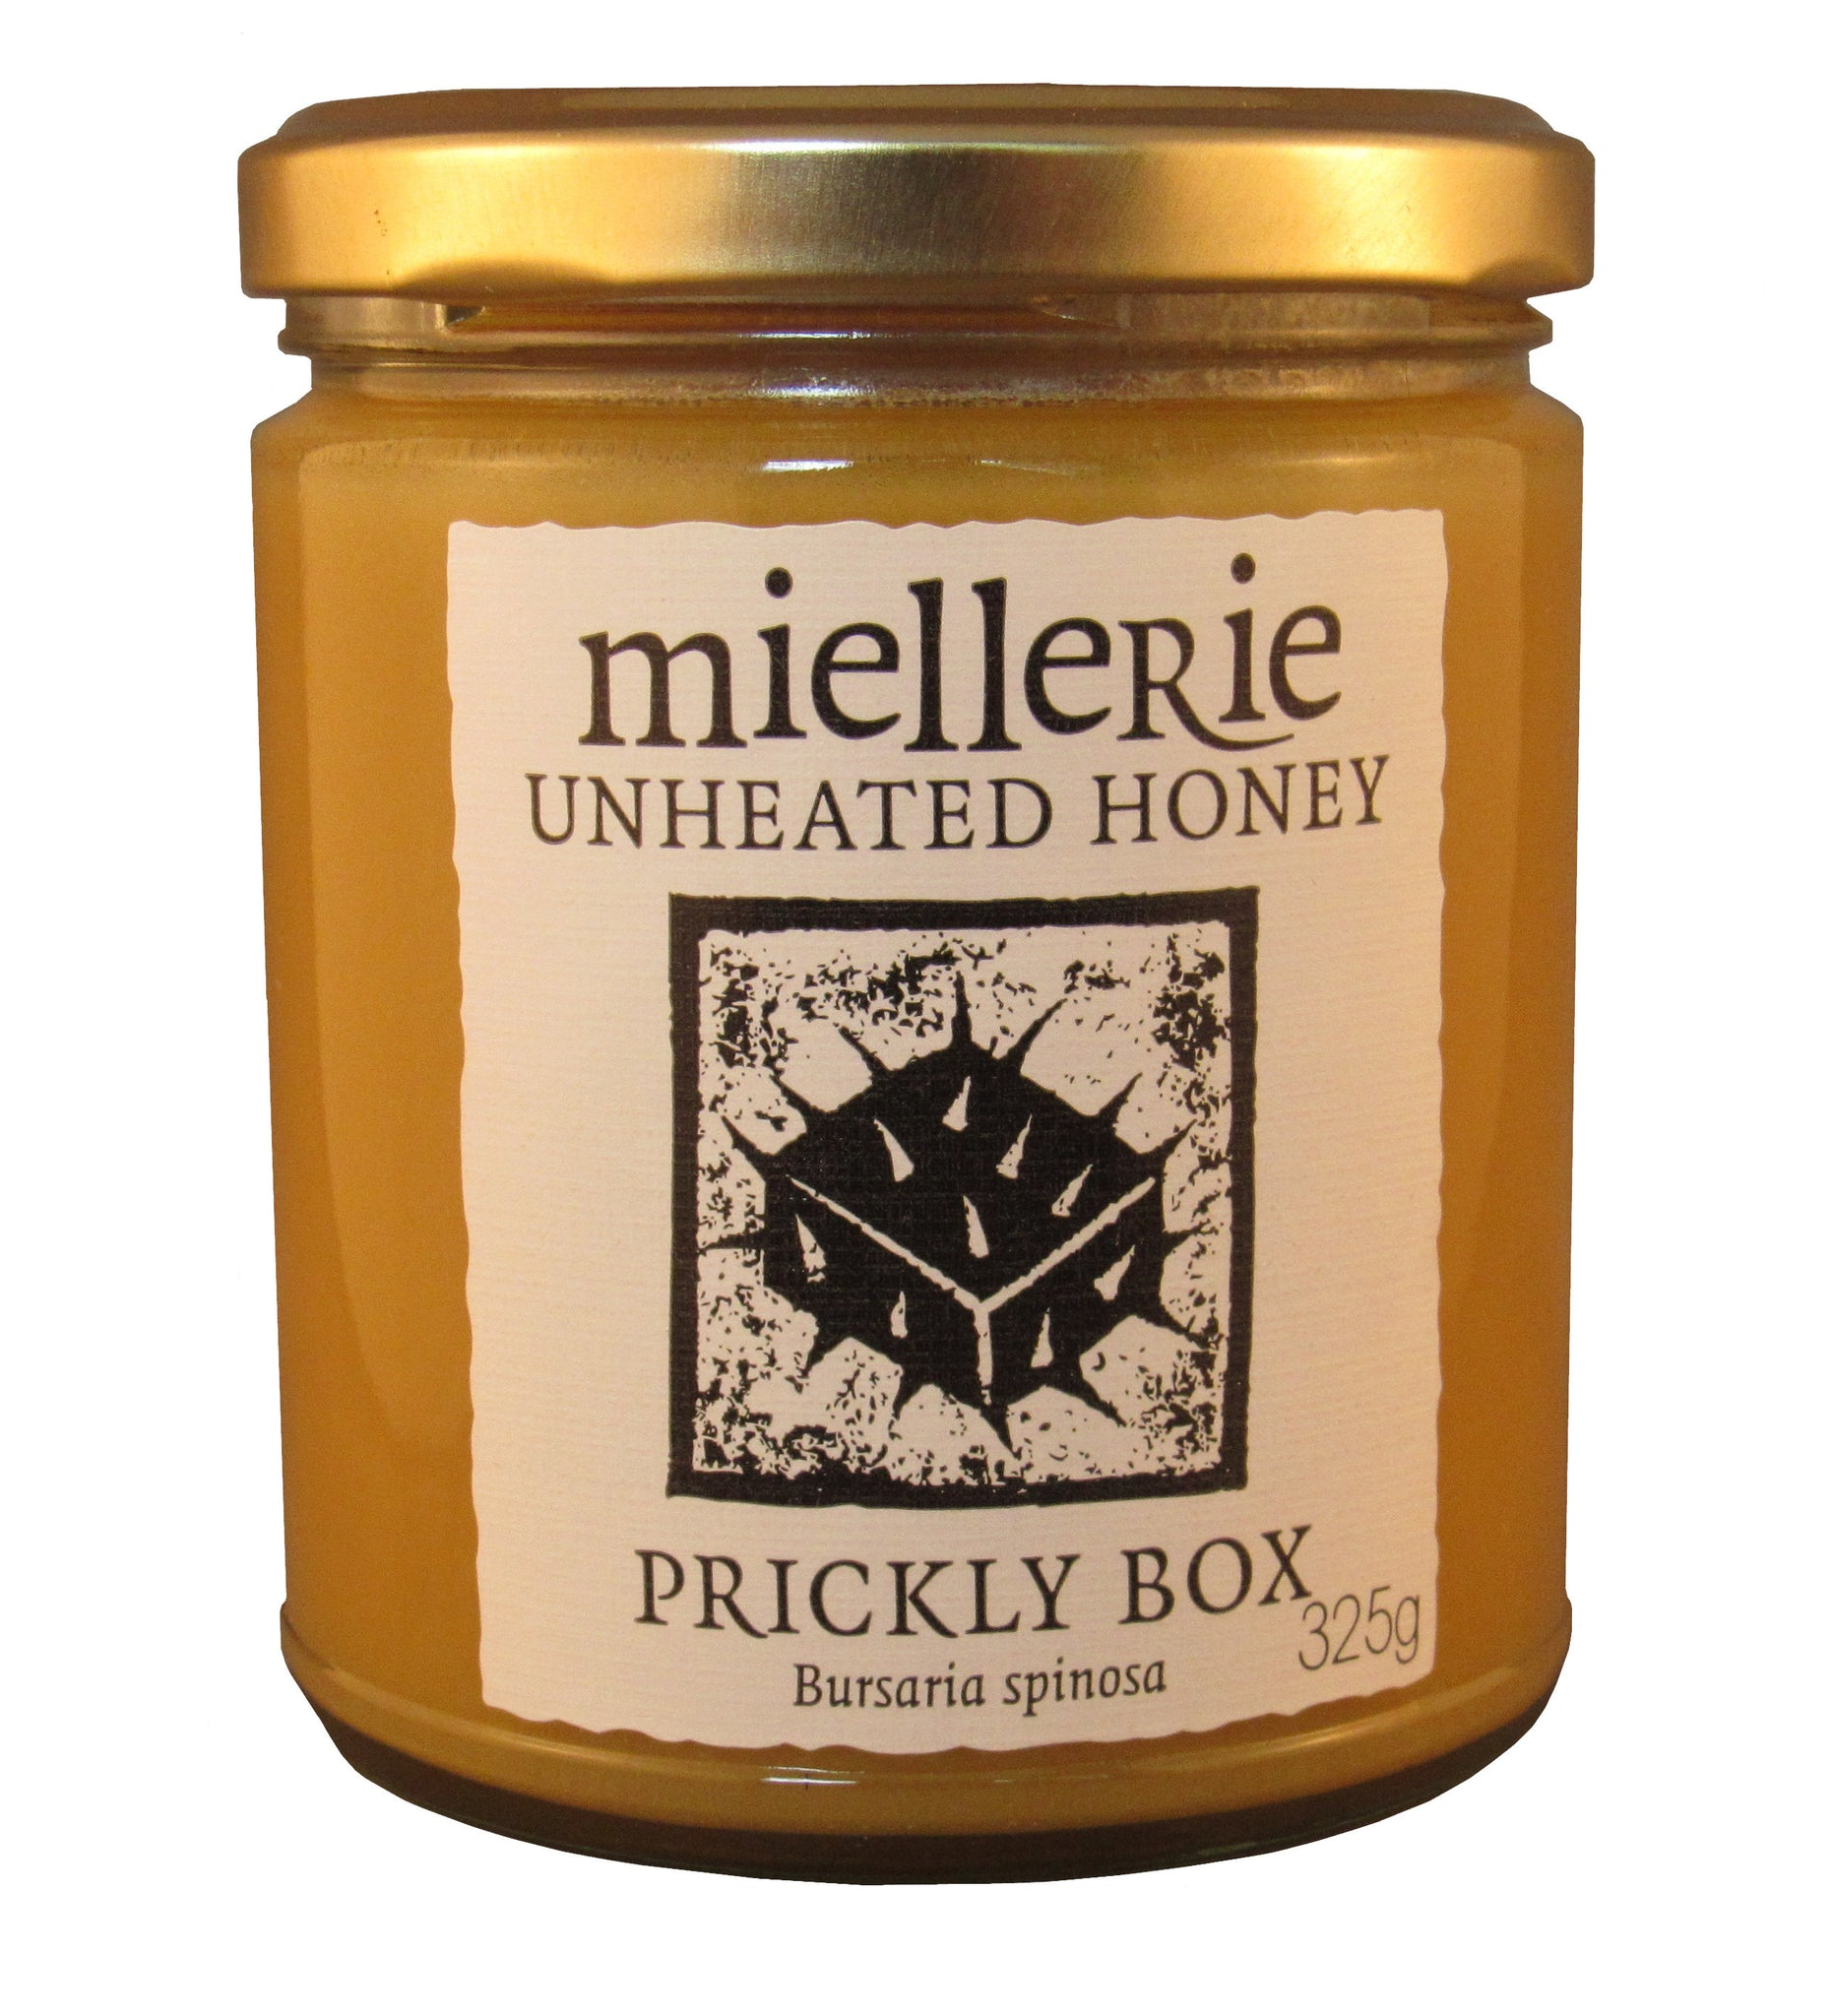 Prickly Box honey, Miellerie, Unheated, 325gms